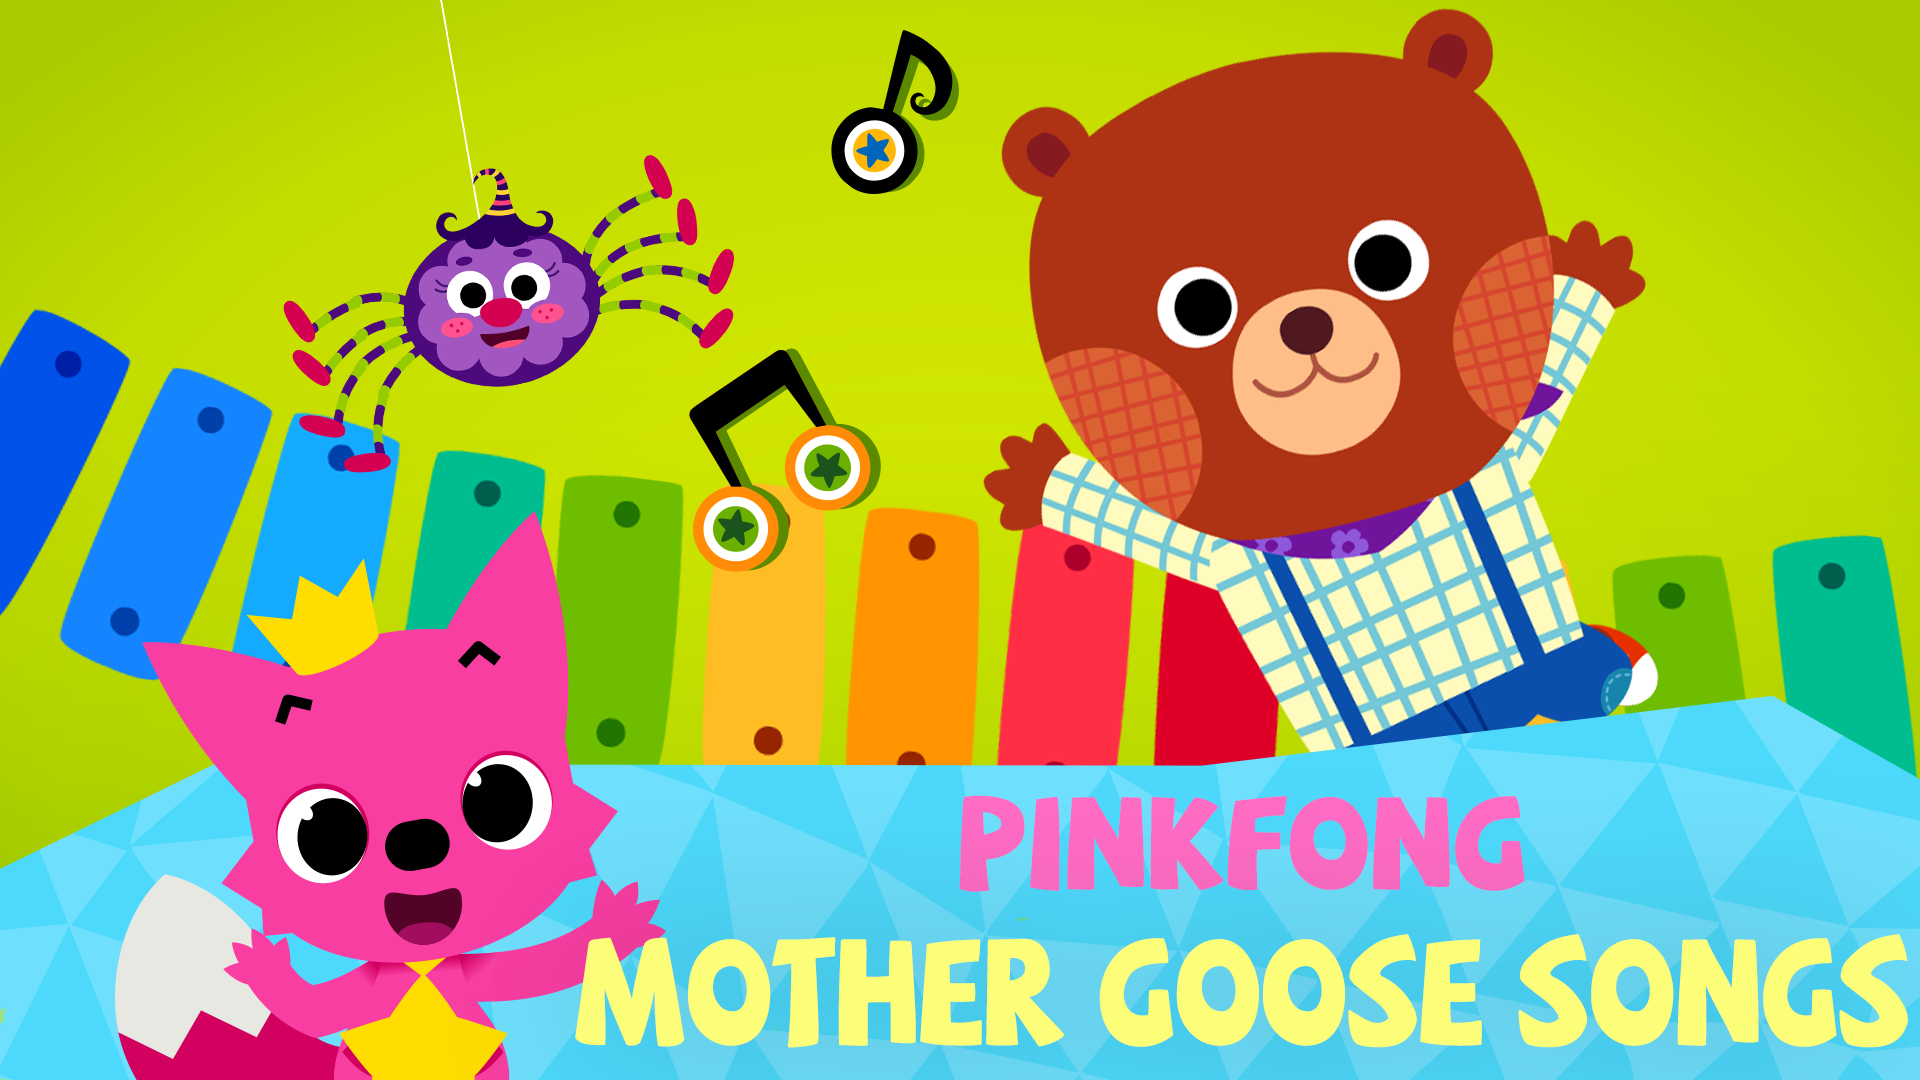 Pinkfong! Mother Goose Songs